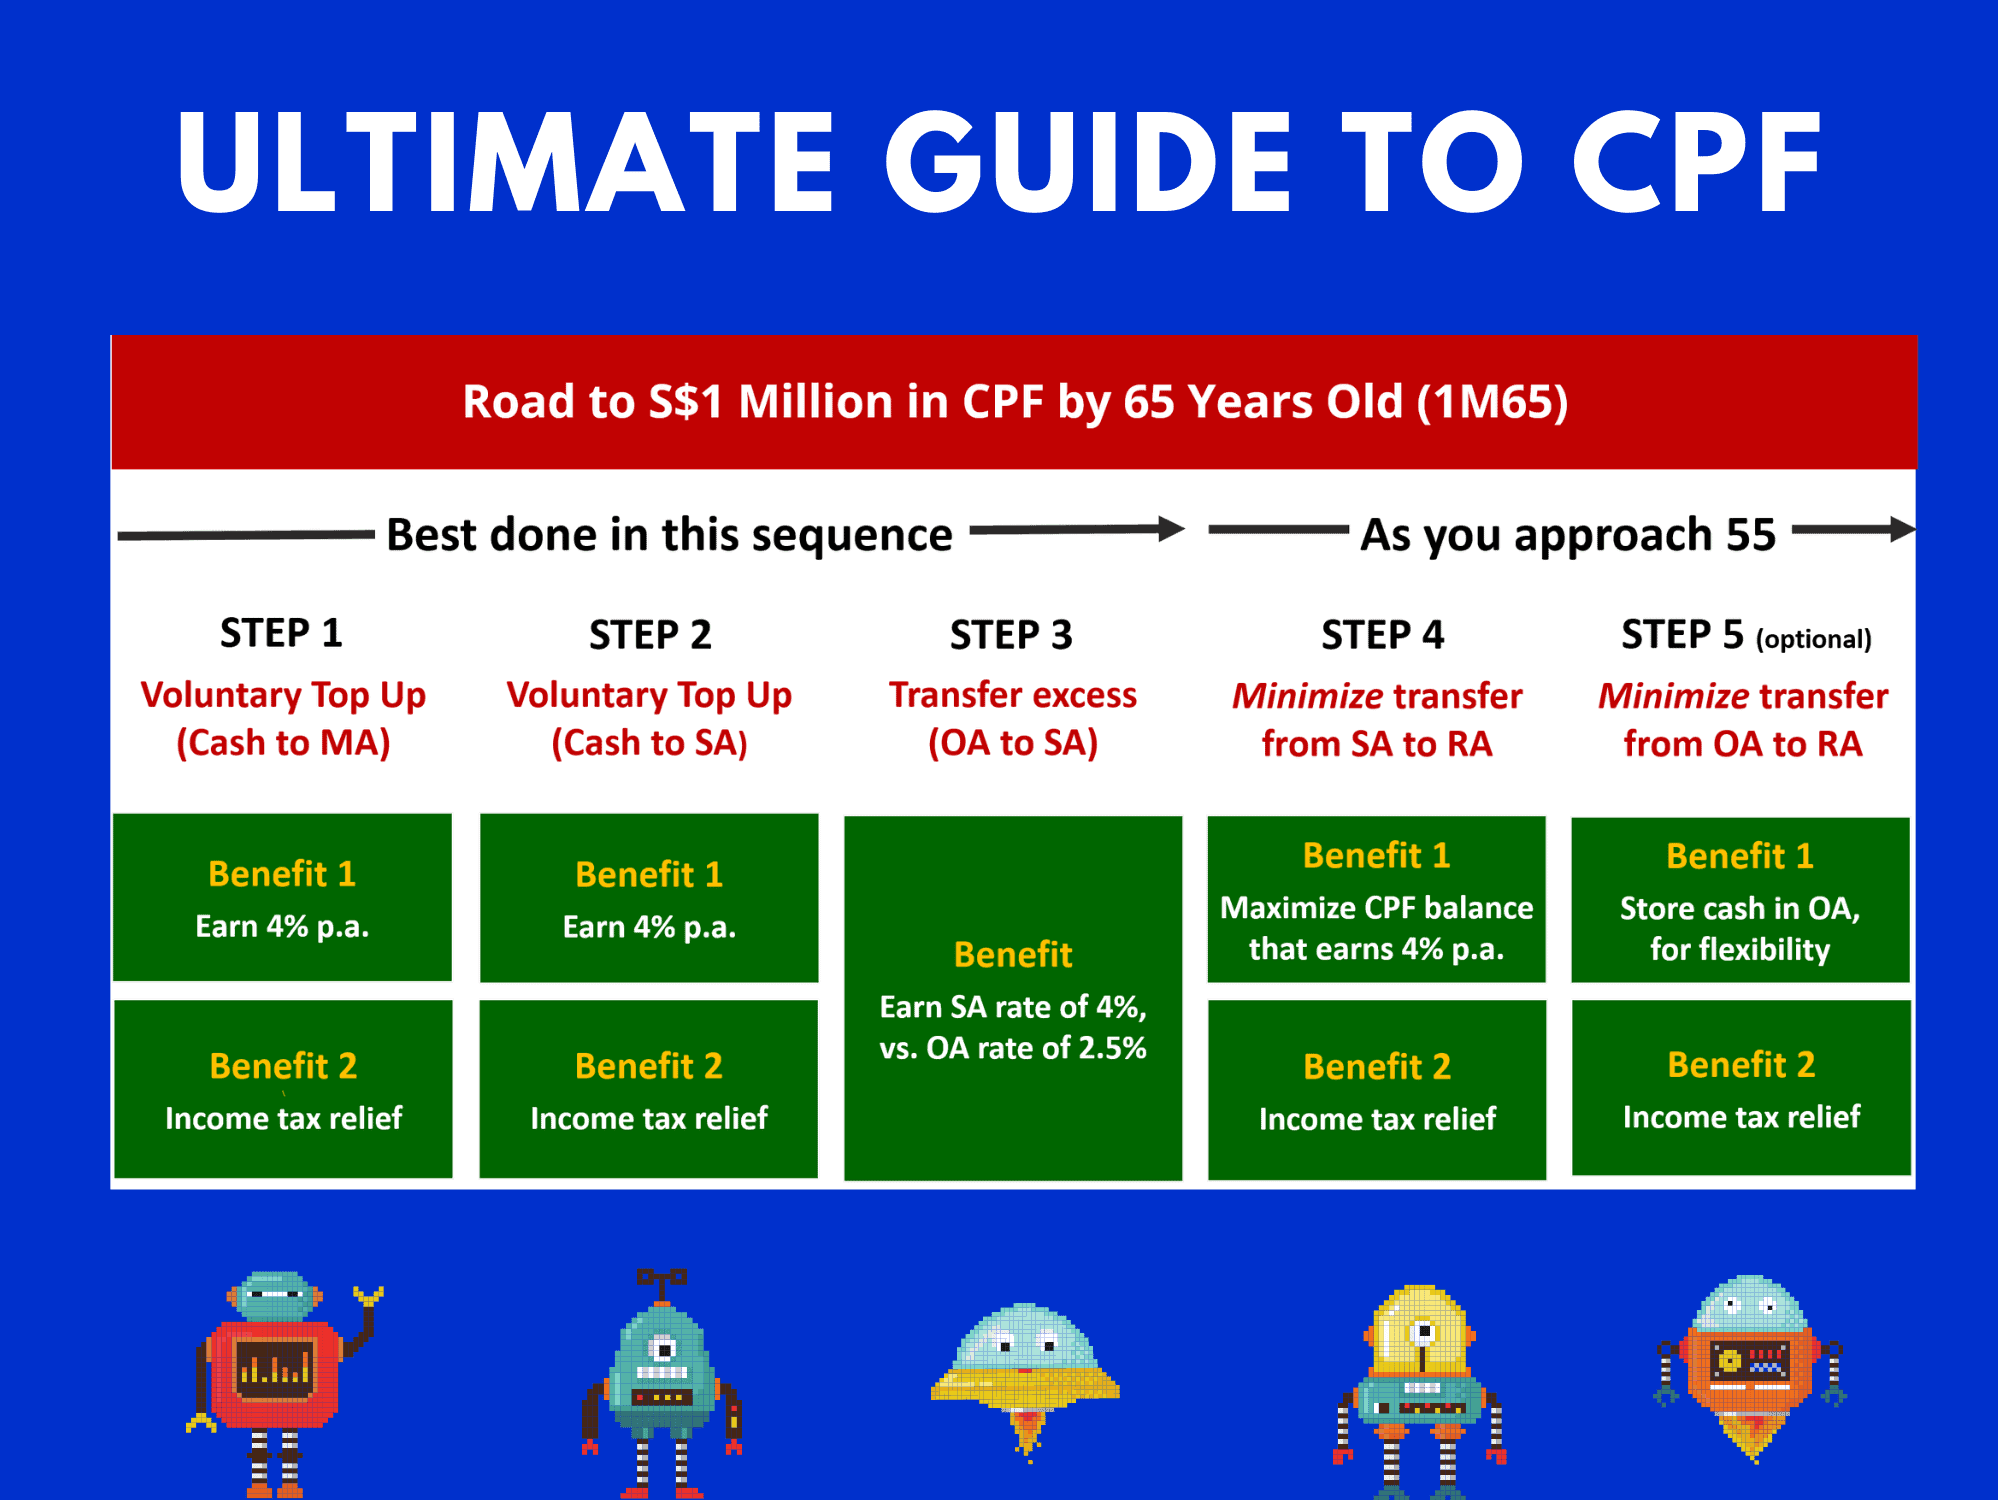 The Ultimate Guide to CPF: 5 Ways to Optimize & Become a CPF Millionaire (1M65)